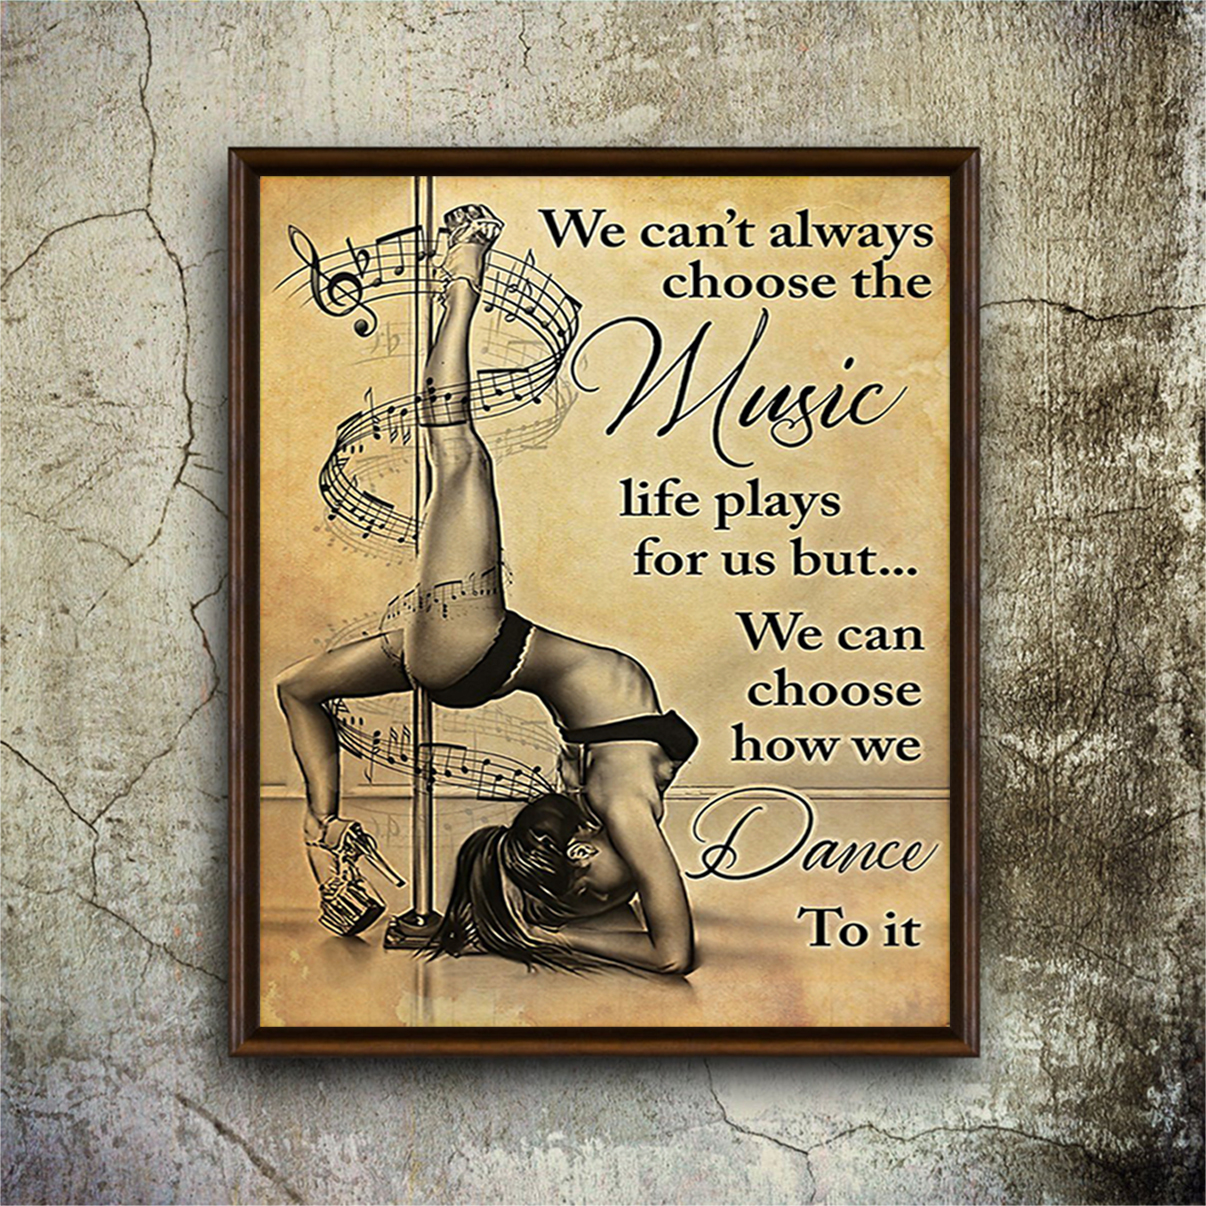 Pole dance we can't alway choose the music poster A3